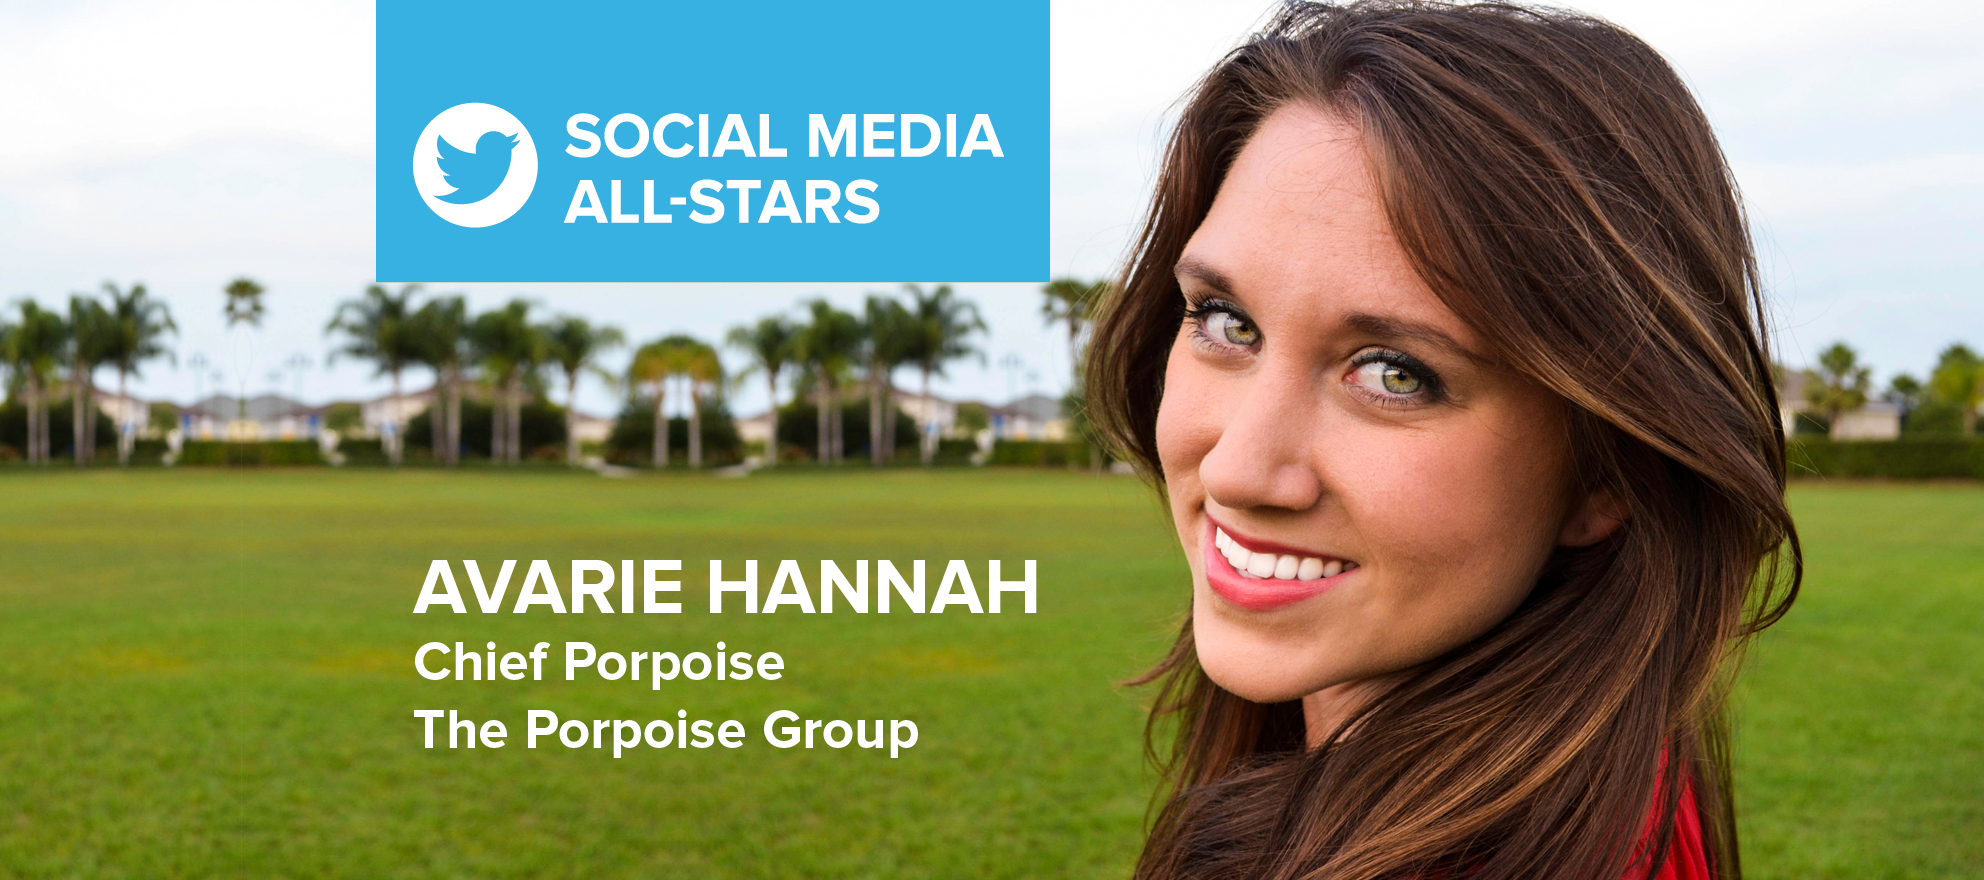 Avarie Hannah: 'Social media is not going anywhere'